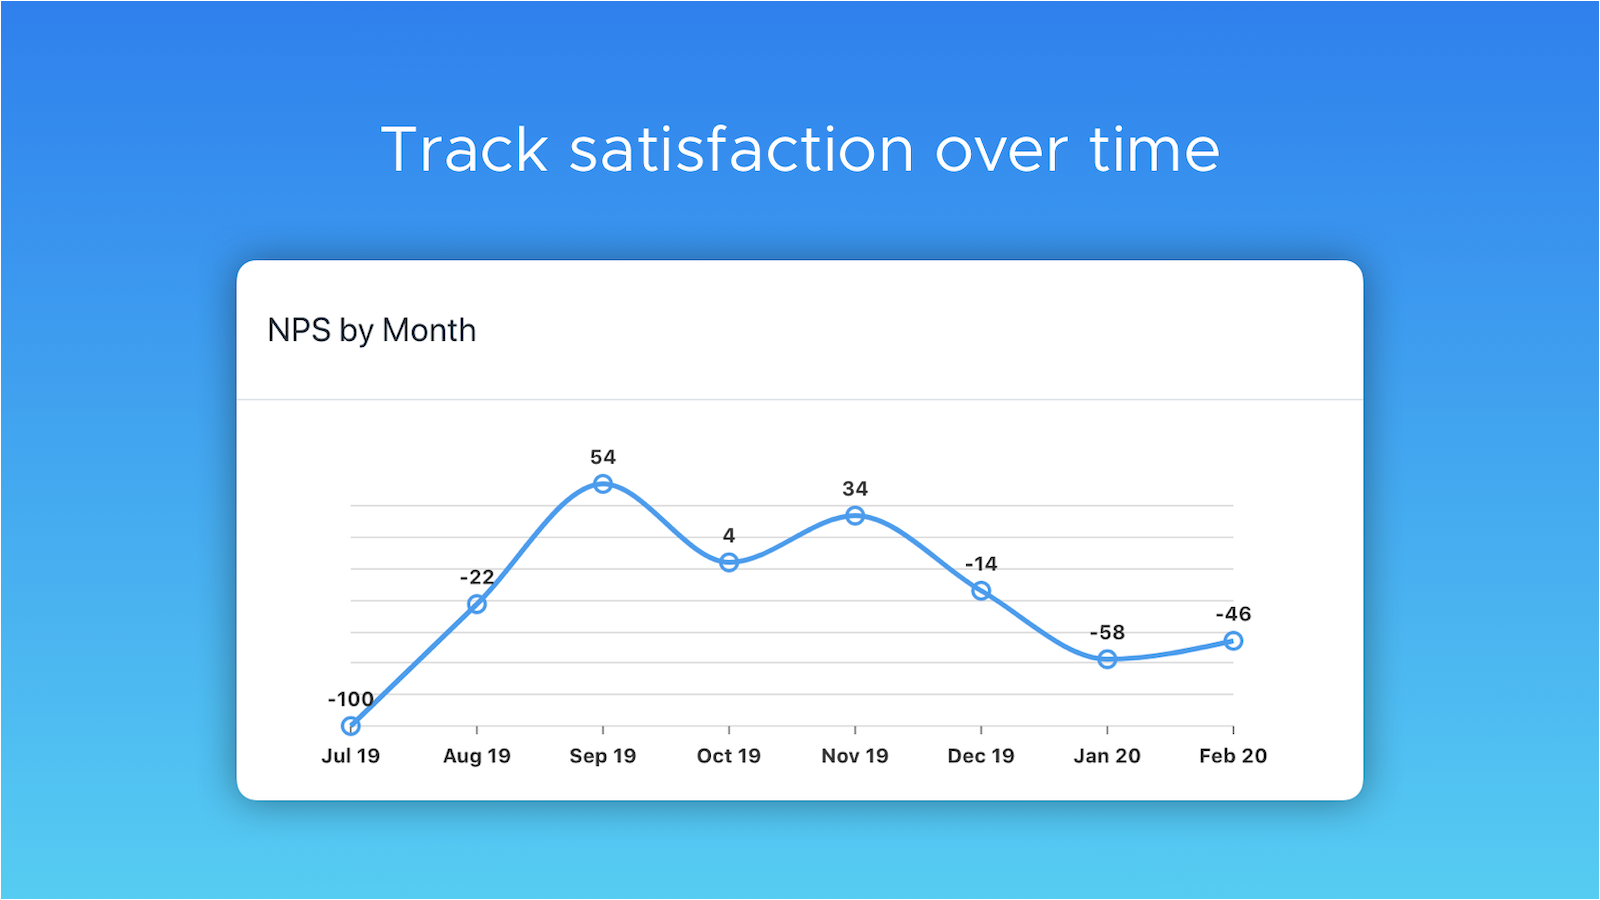 Track satisfaction over time